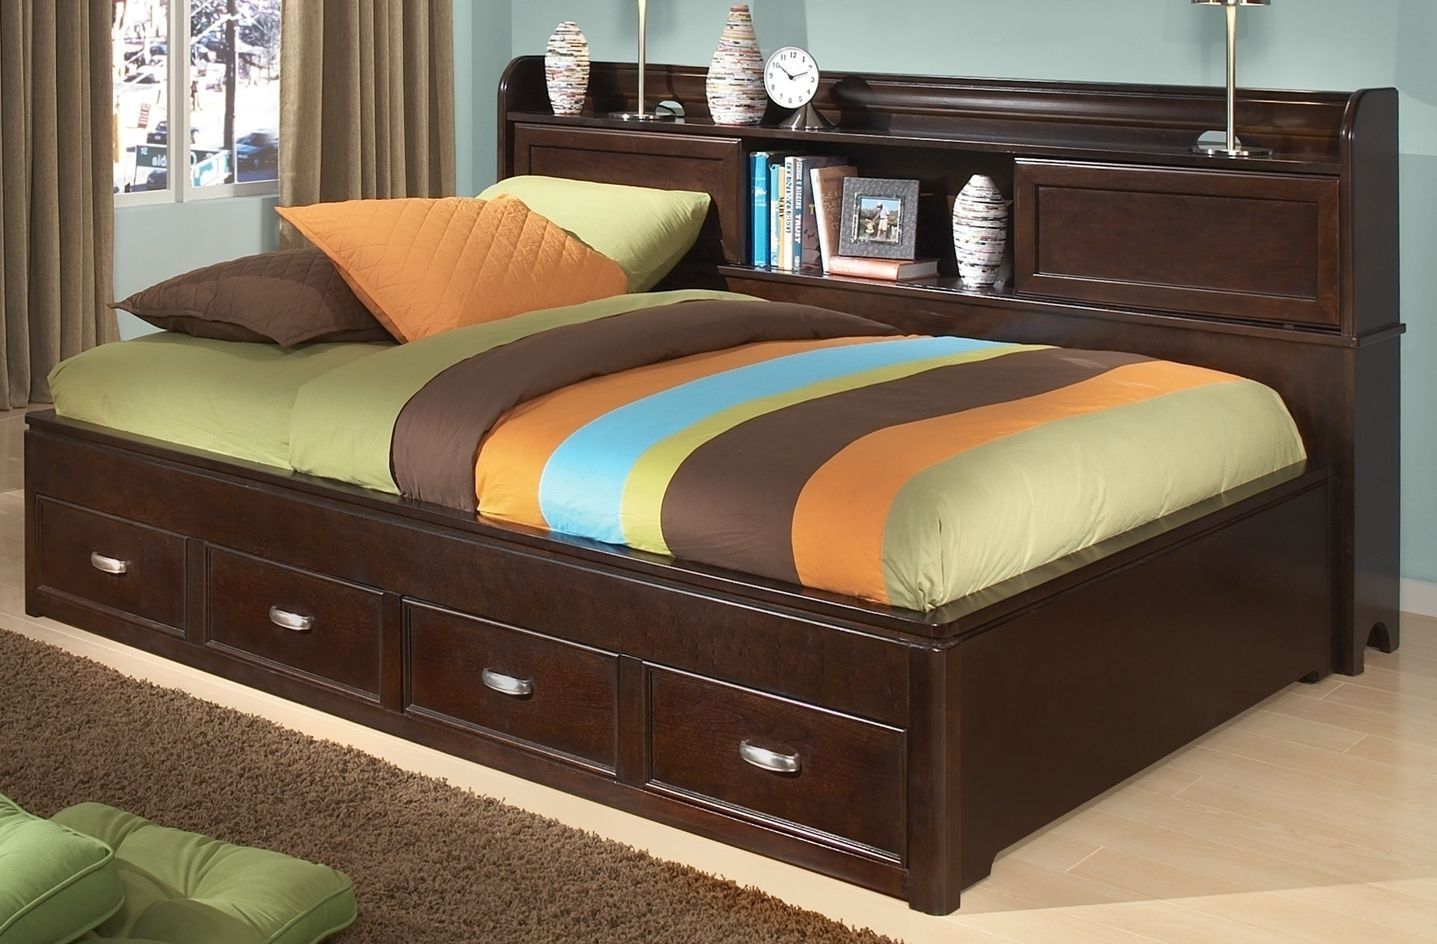 Park City Merlot Full Bookcase Storage Lounge Bed From Legacy Kids Coleman Furniture